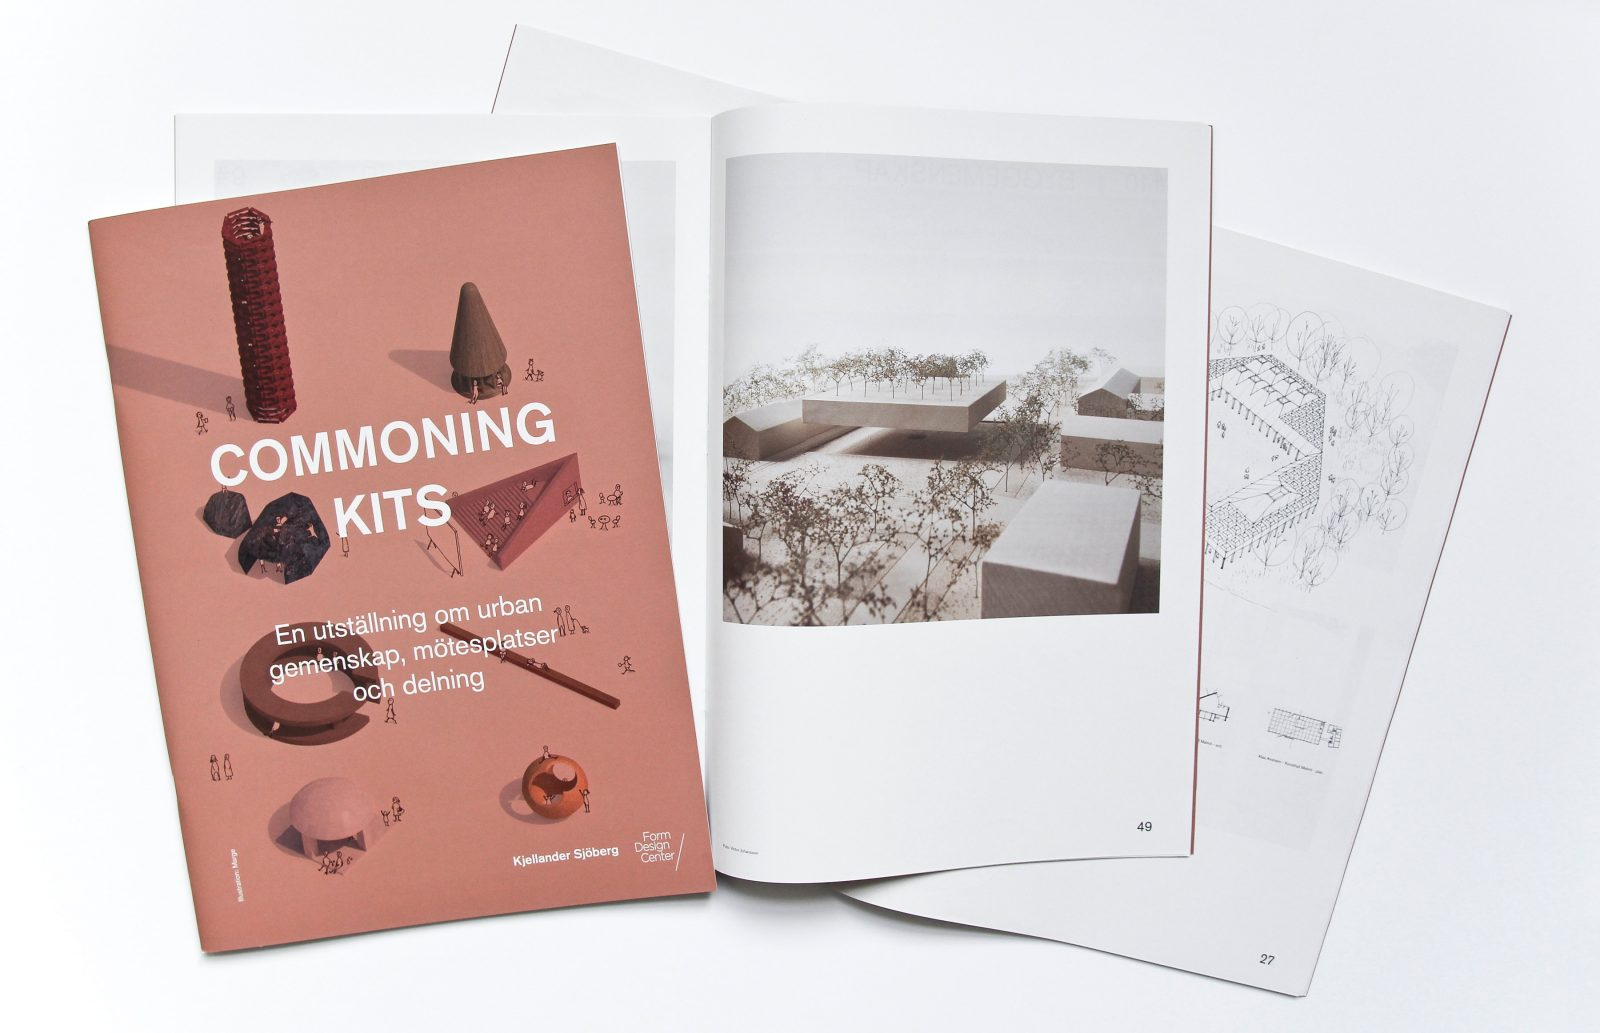 Commoning Kits